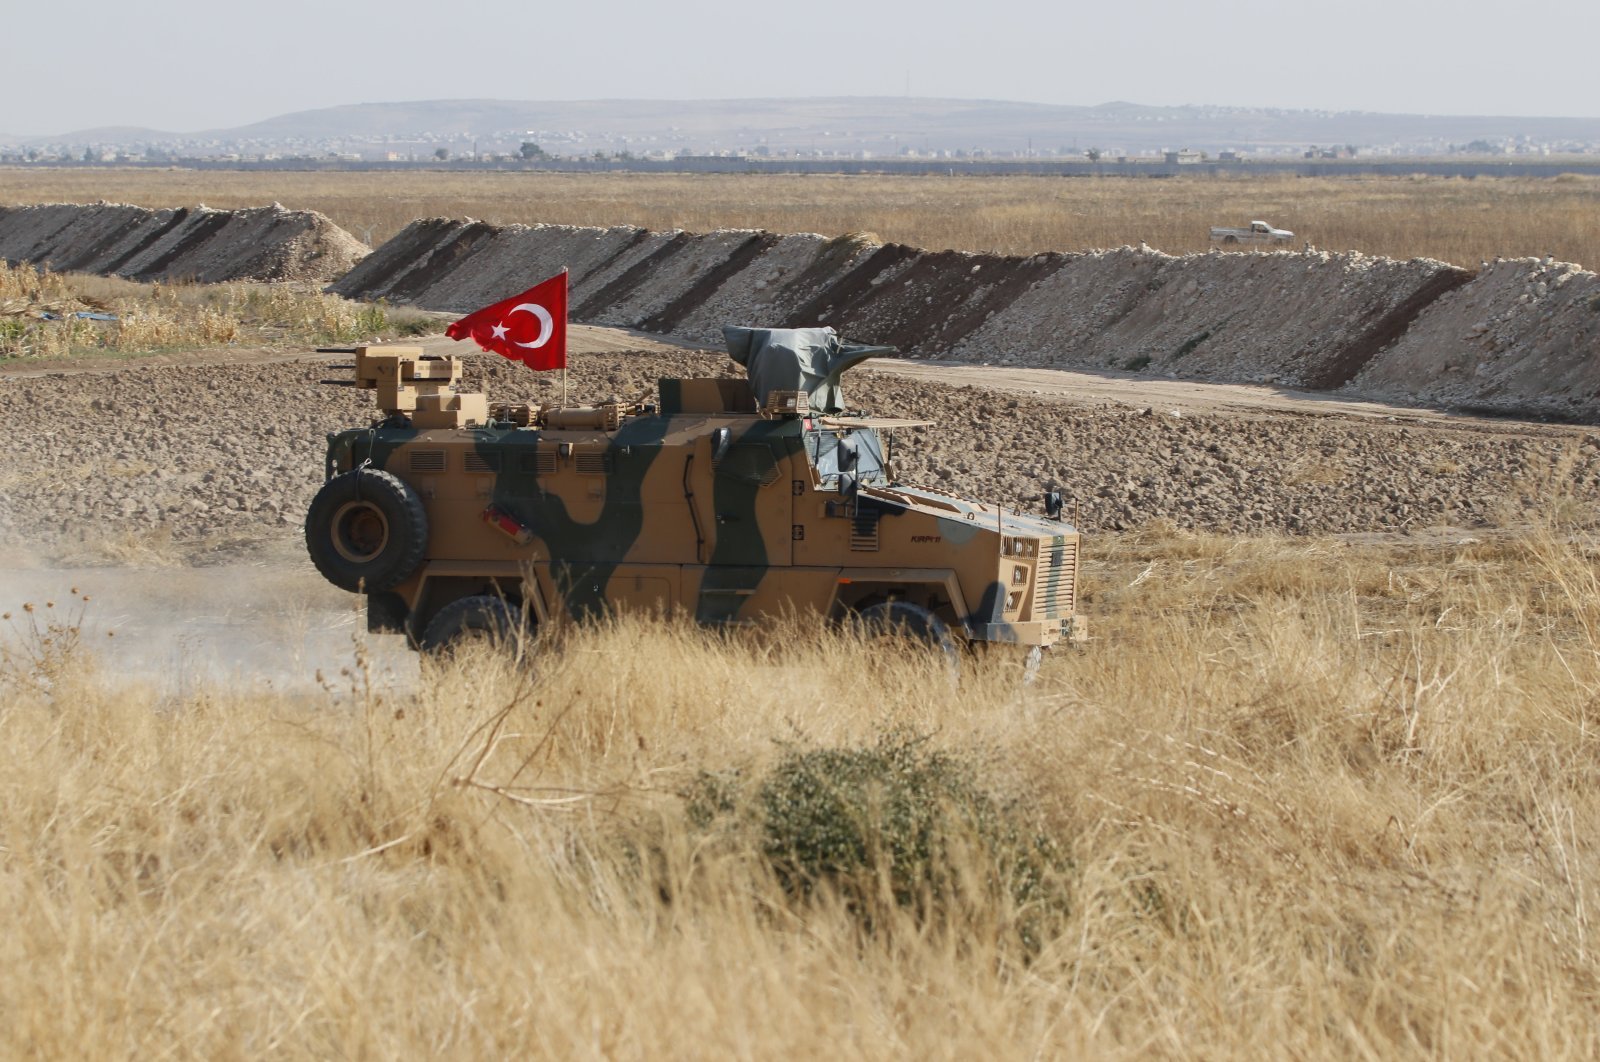 Turkish-Russian forces started joint patrols on March 15 along the M4 highway.